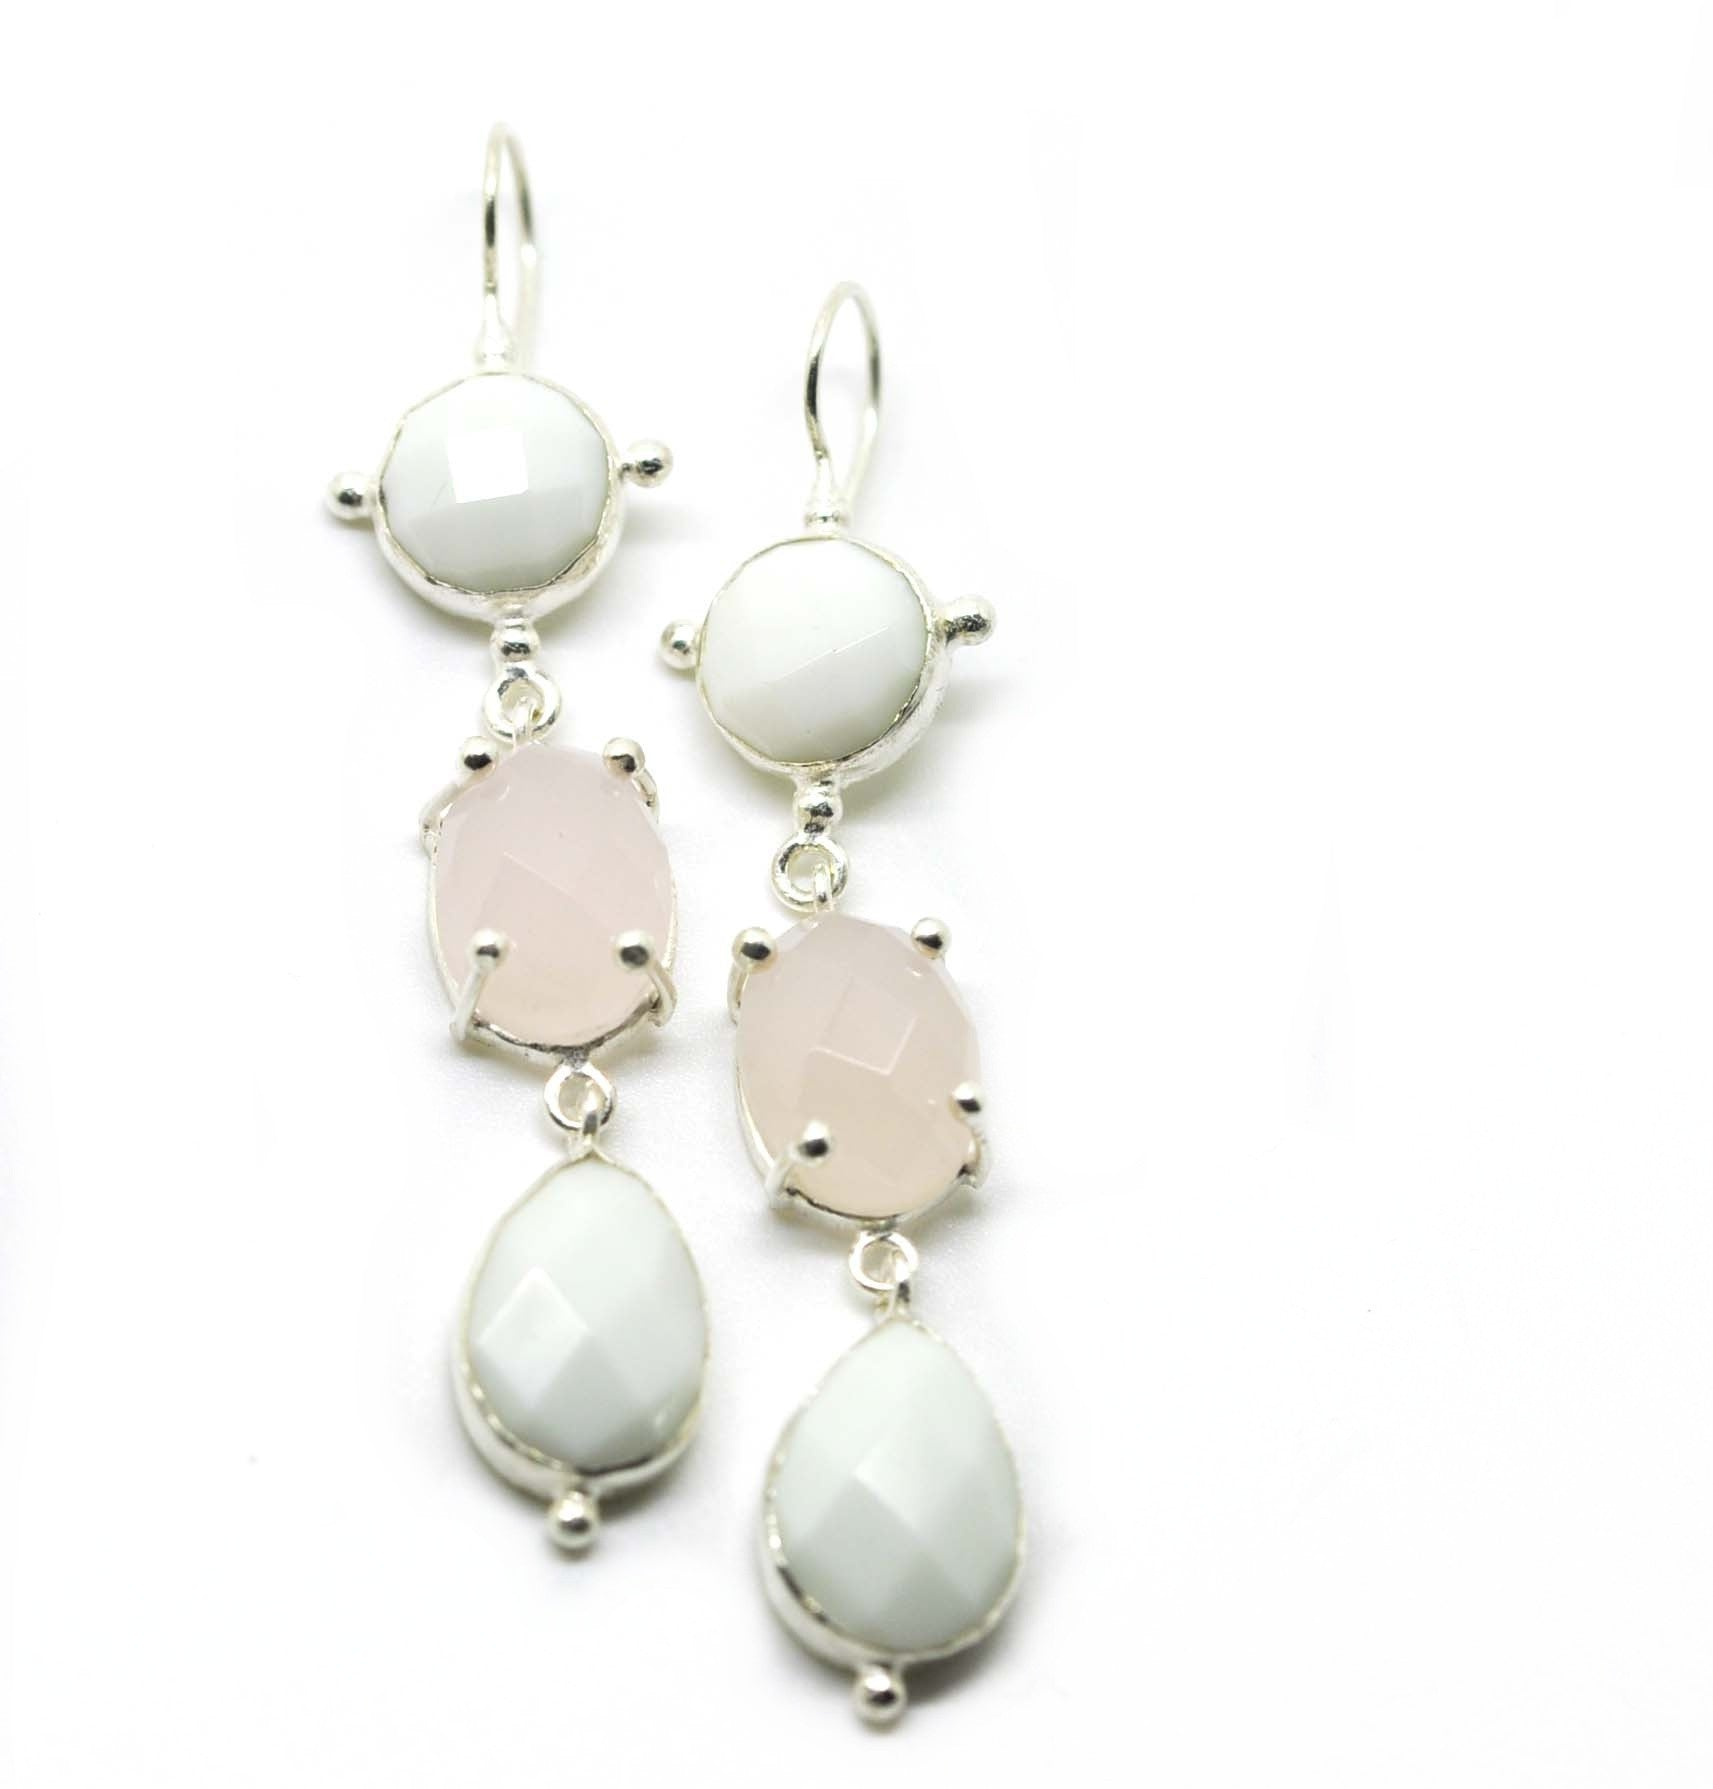 Chalcedony and agate earring